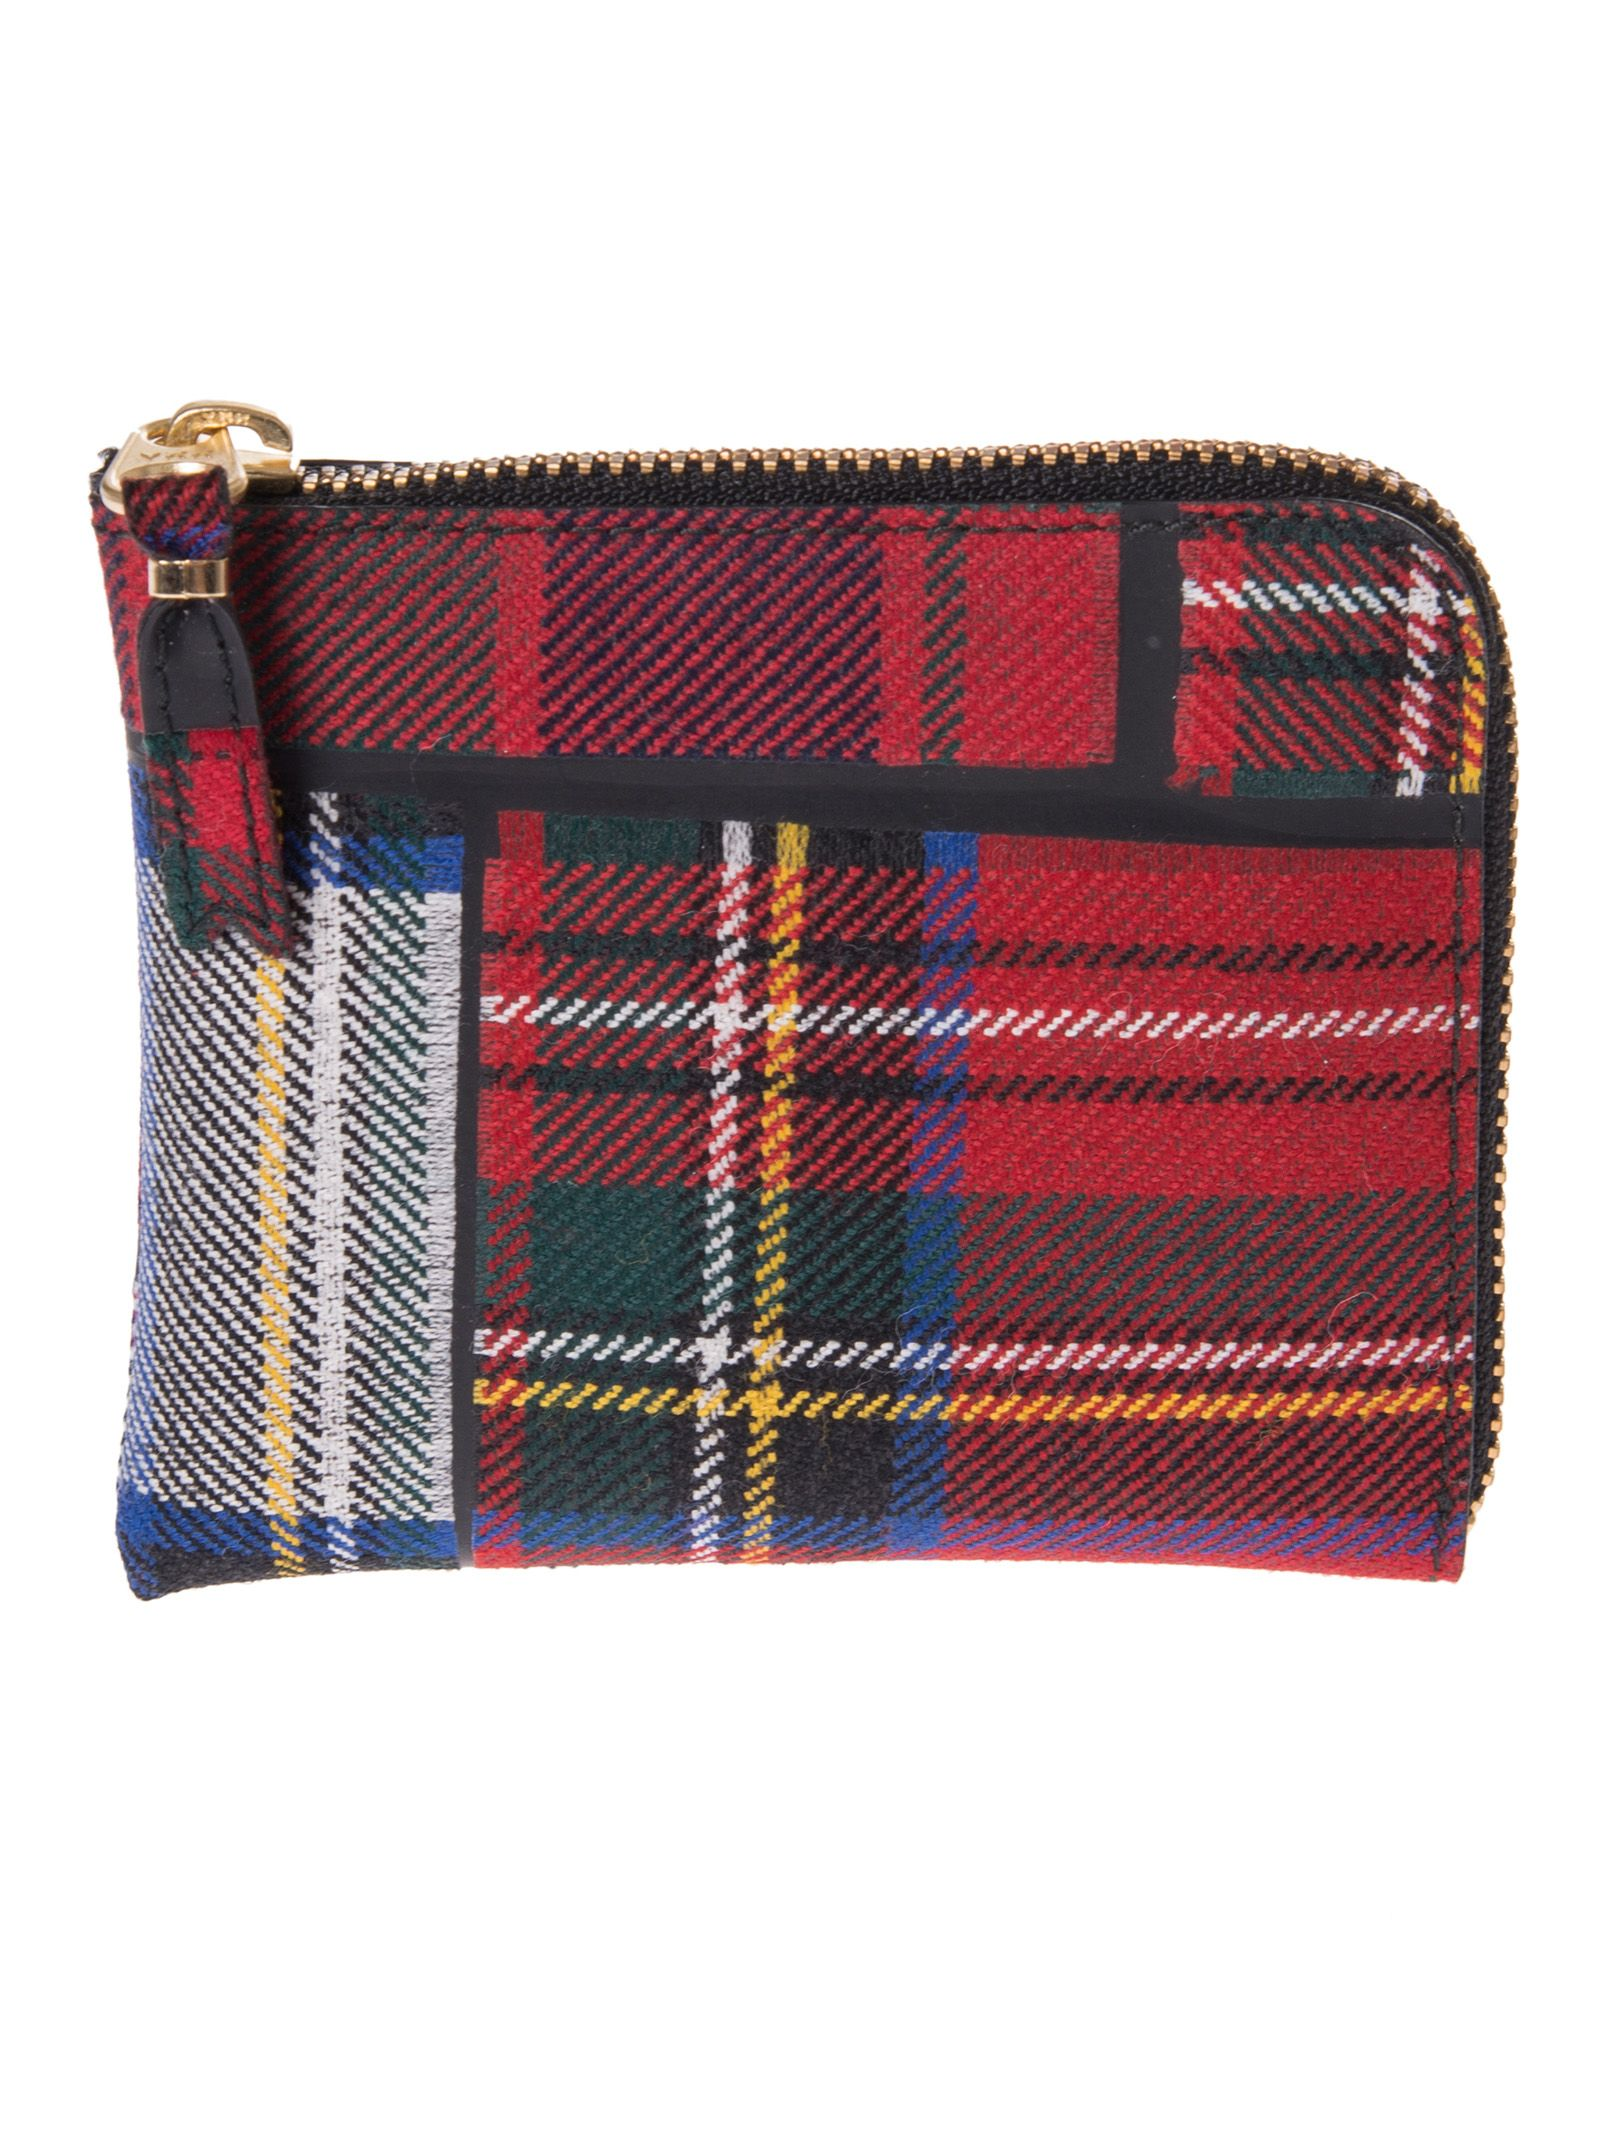 Comme Des Garcons Check Top Zip Around Wallet